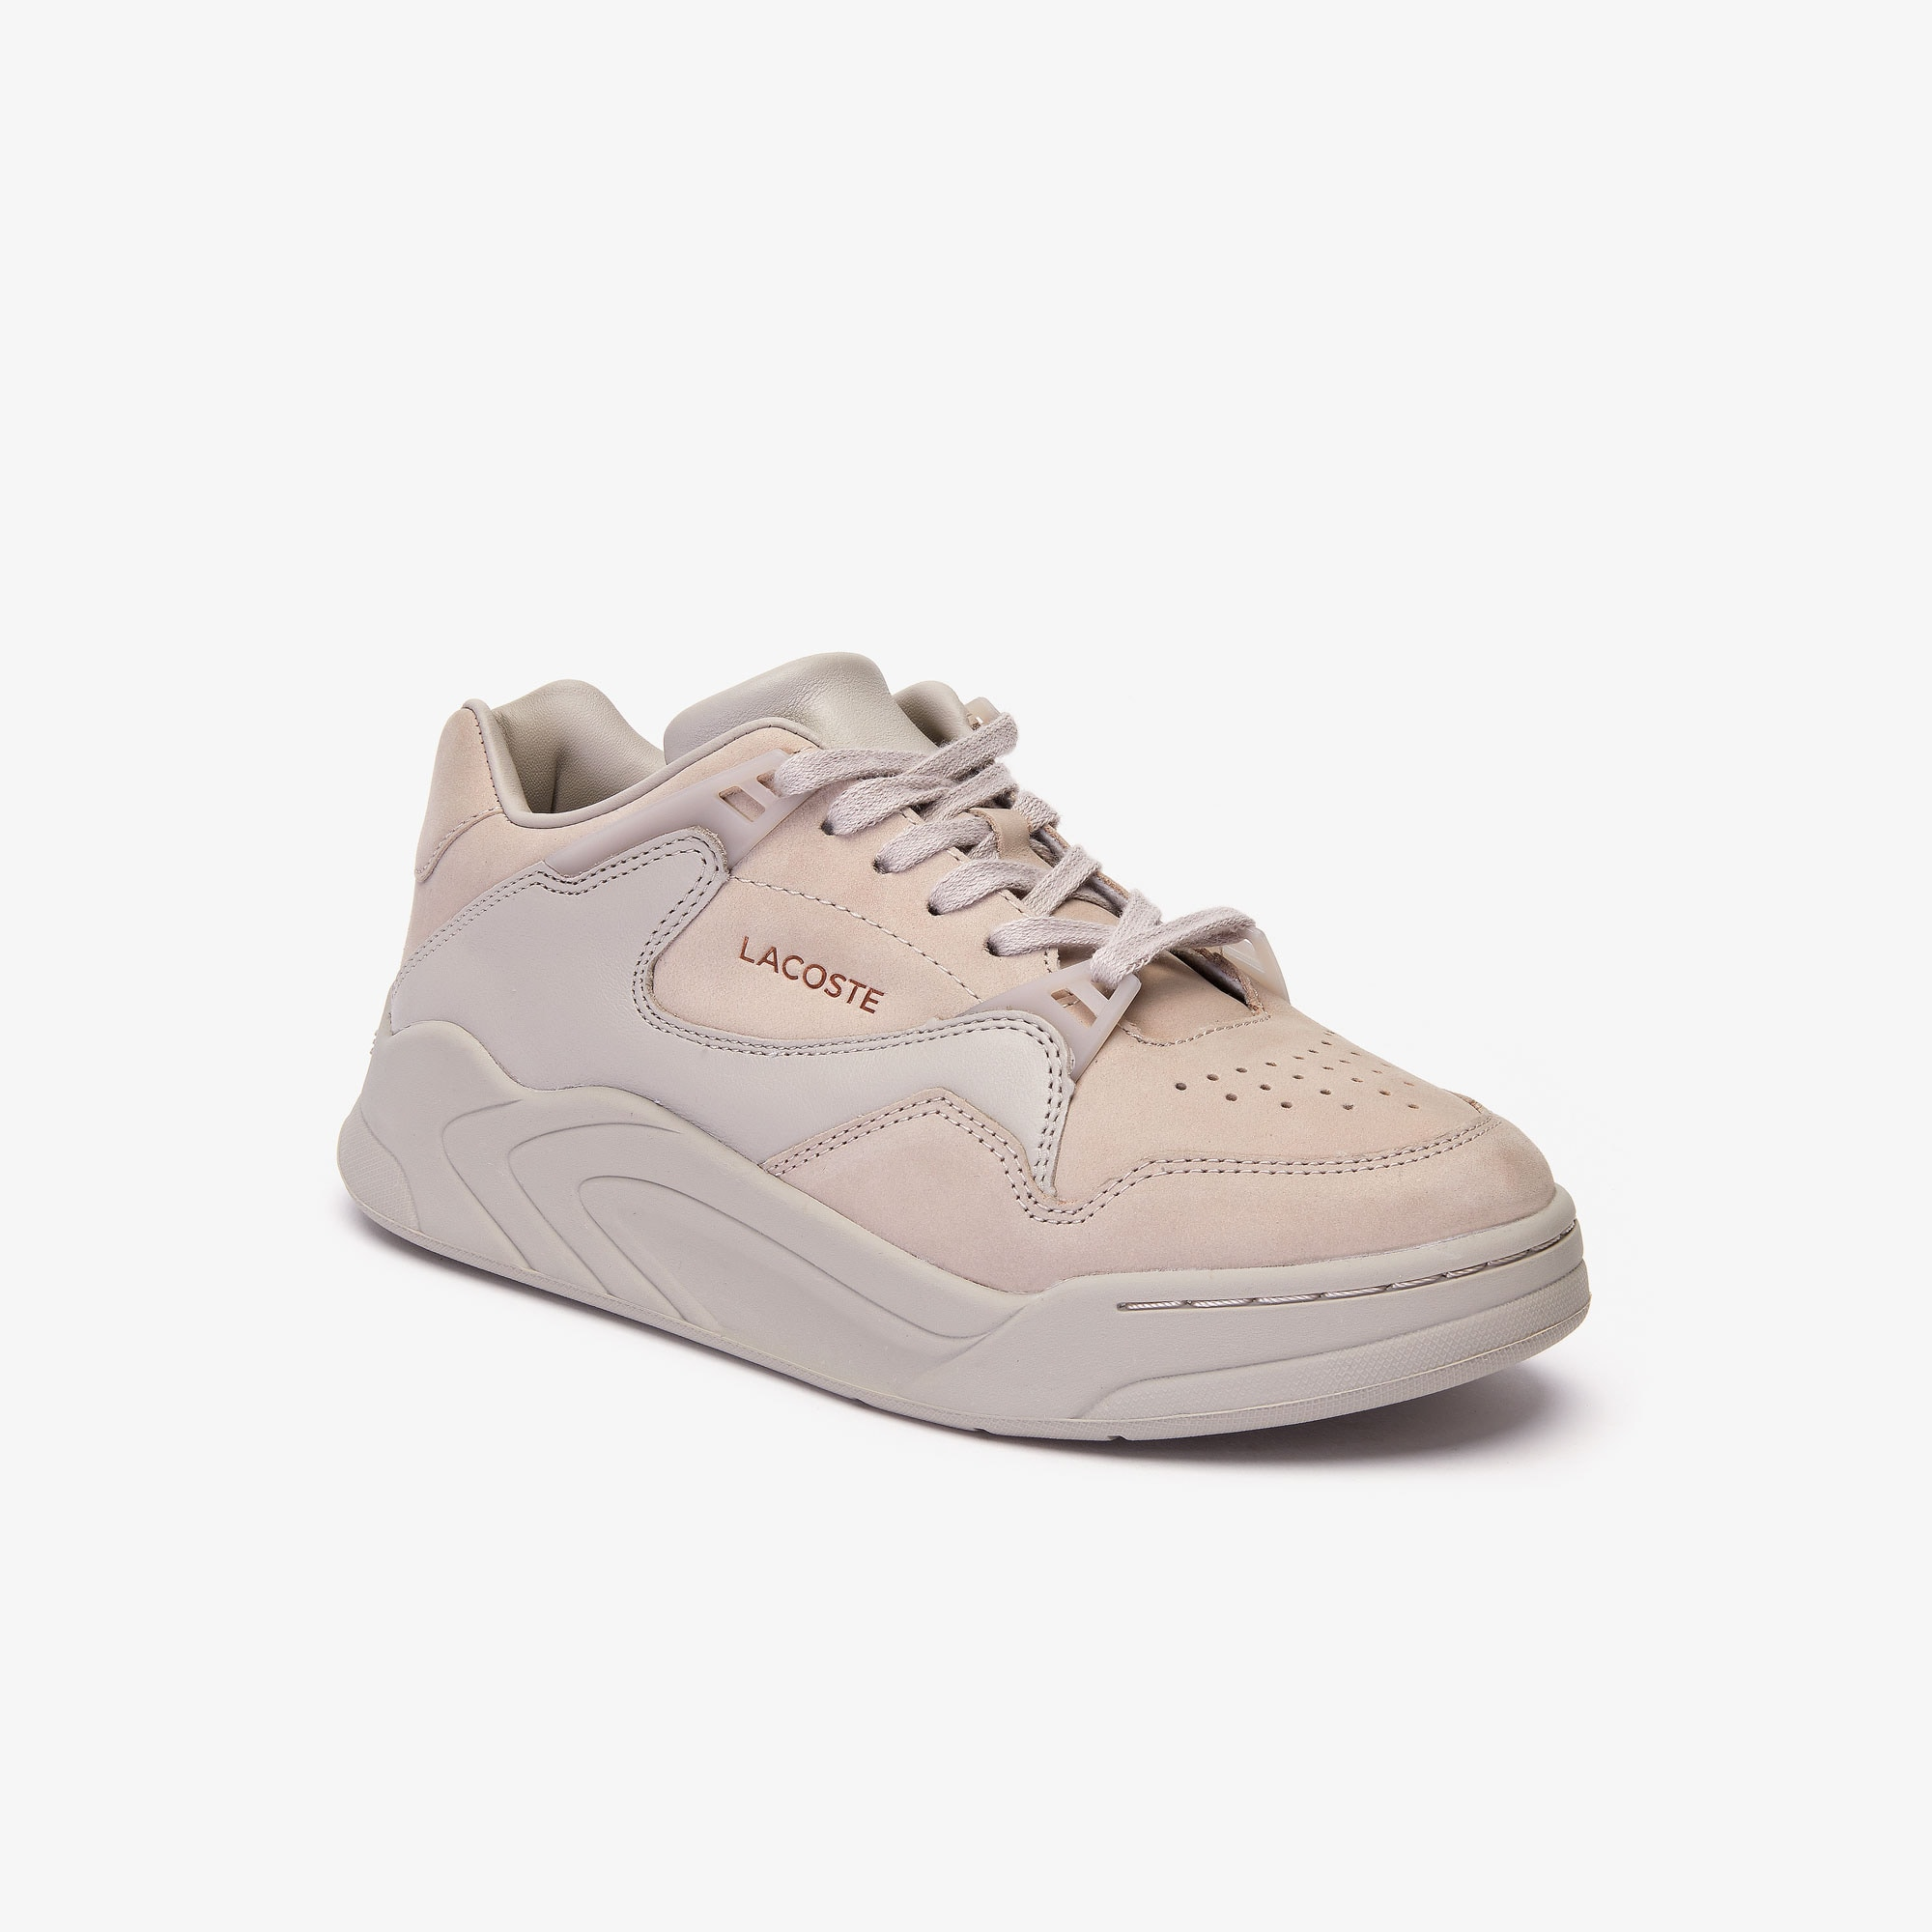 Damen-Sneakers COURT SLAM aus Nubukleder